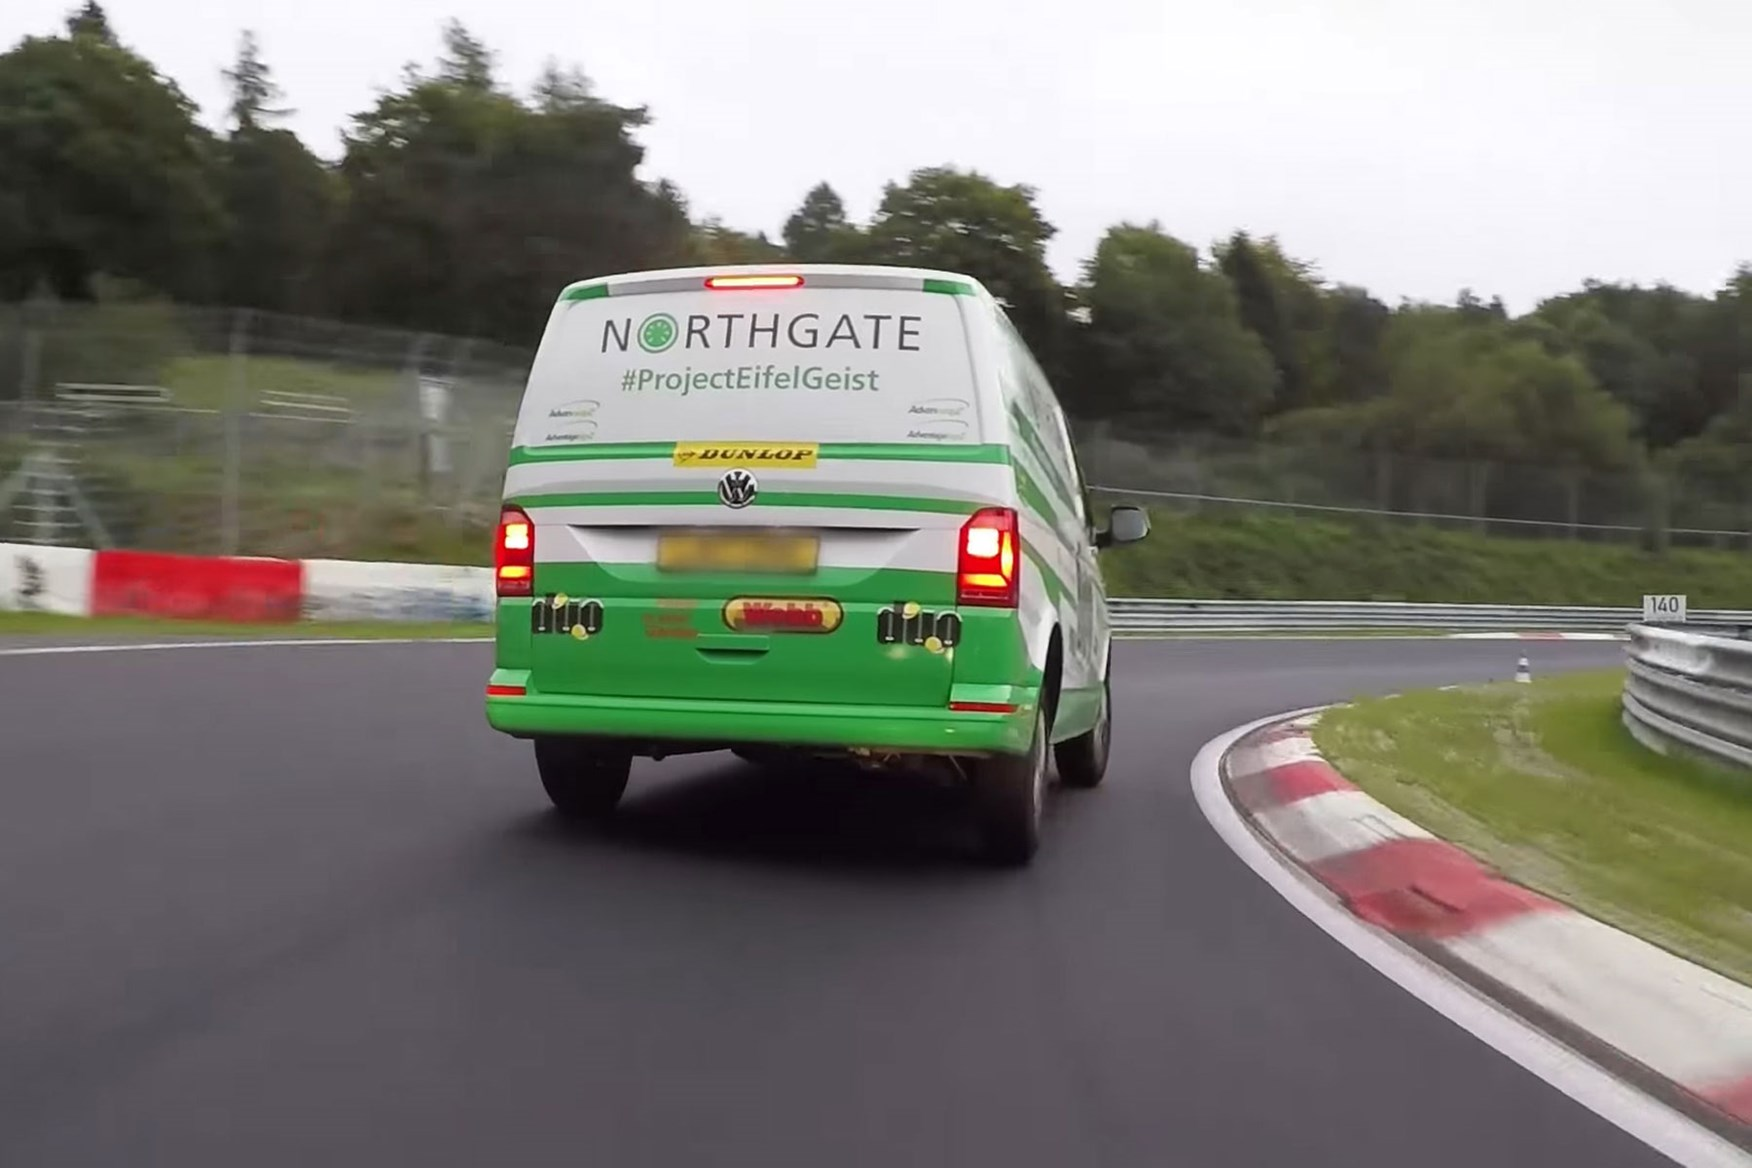 Vw transporter rental van sets new nurburgring record video parkers vw transporter takes on the nurburging on track rear view publicscrutiny Images